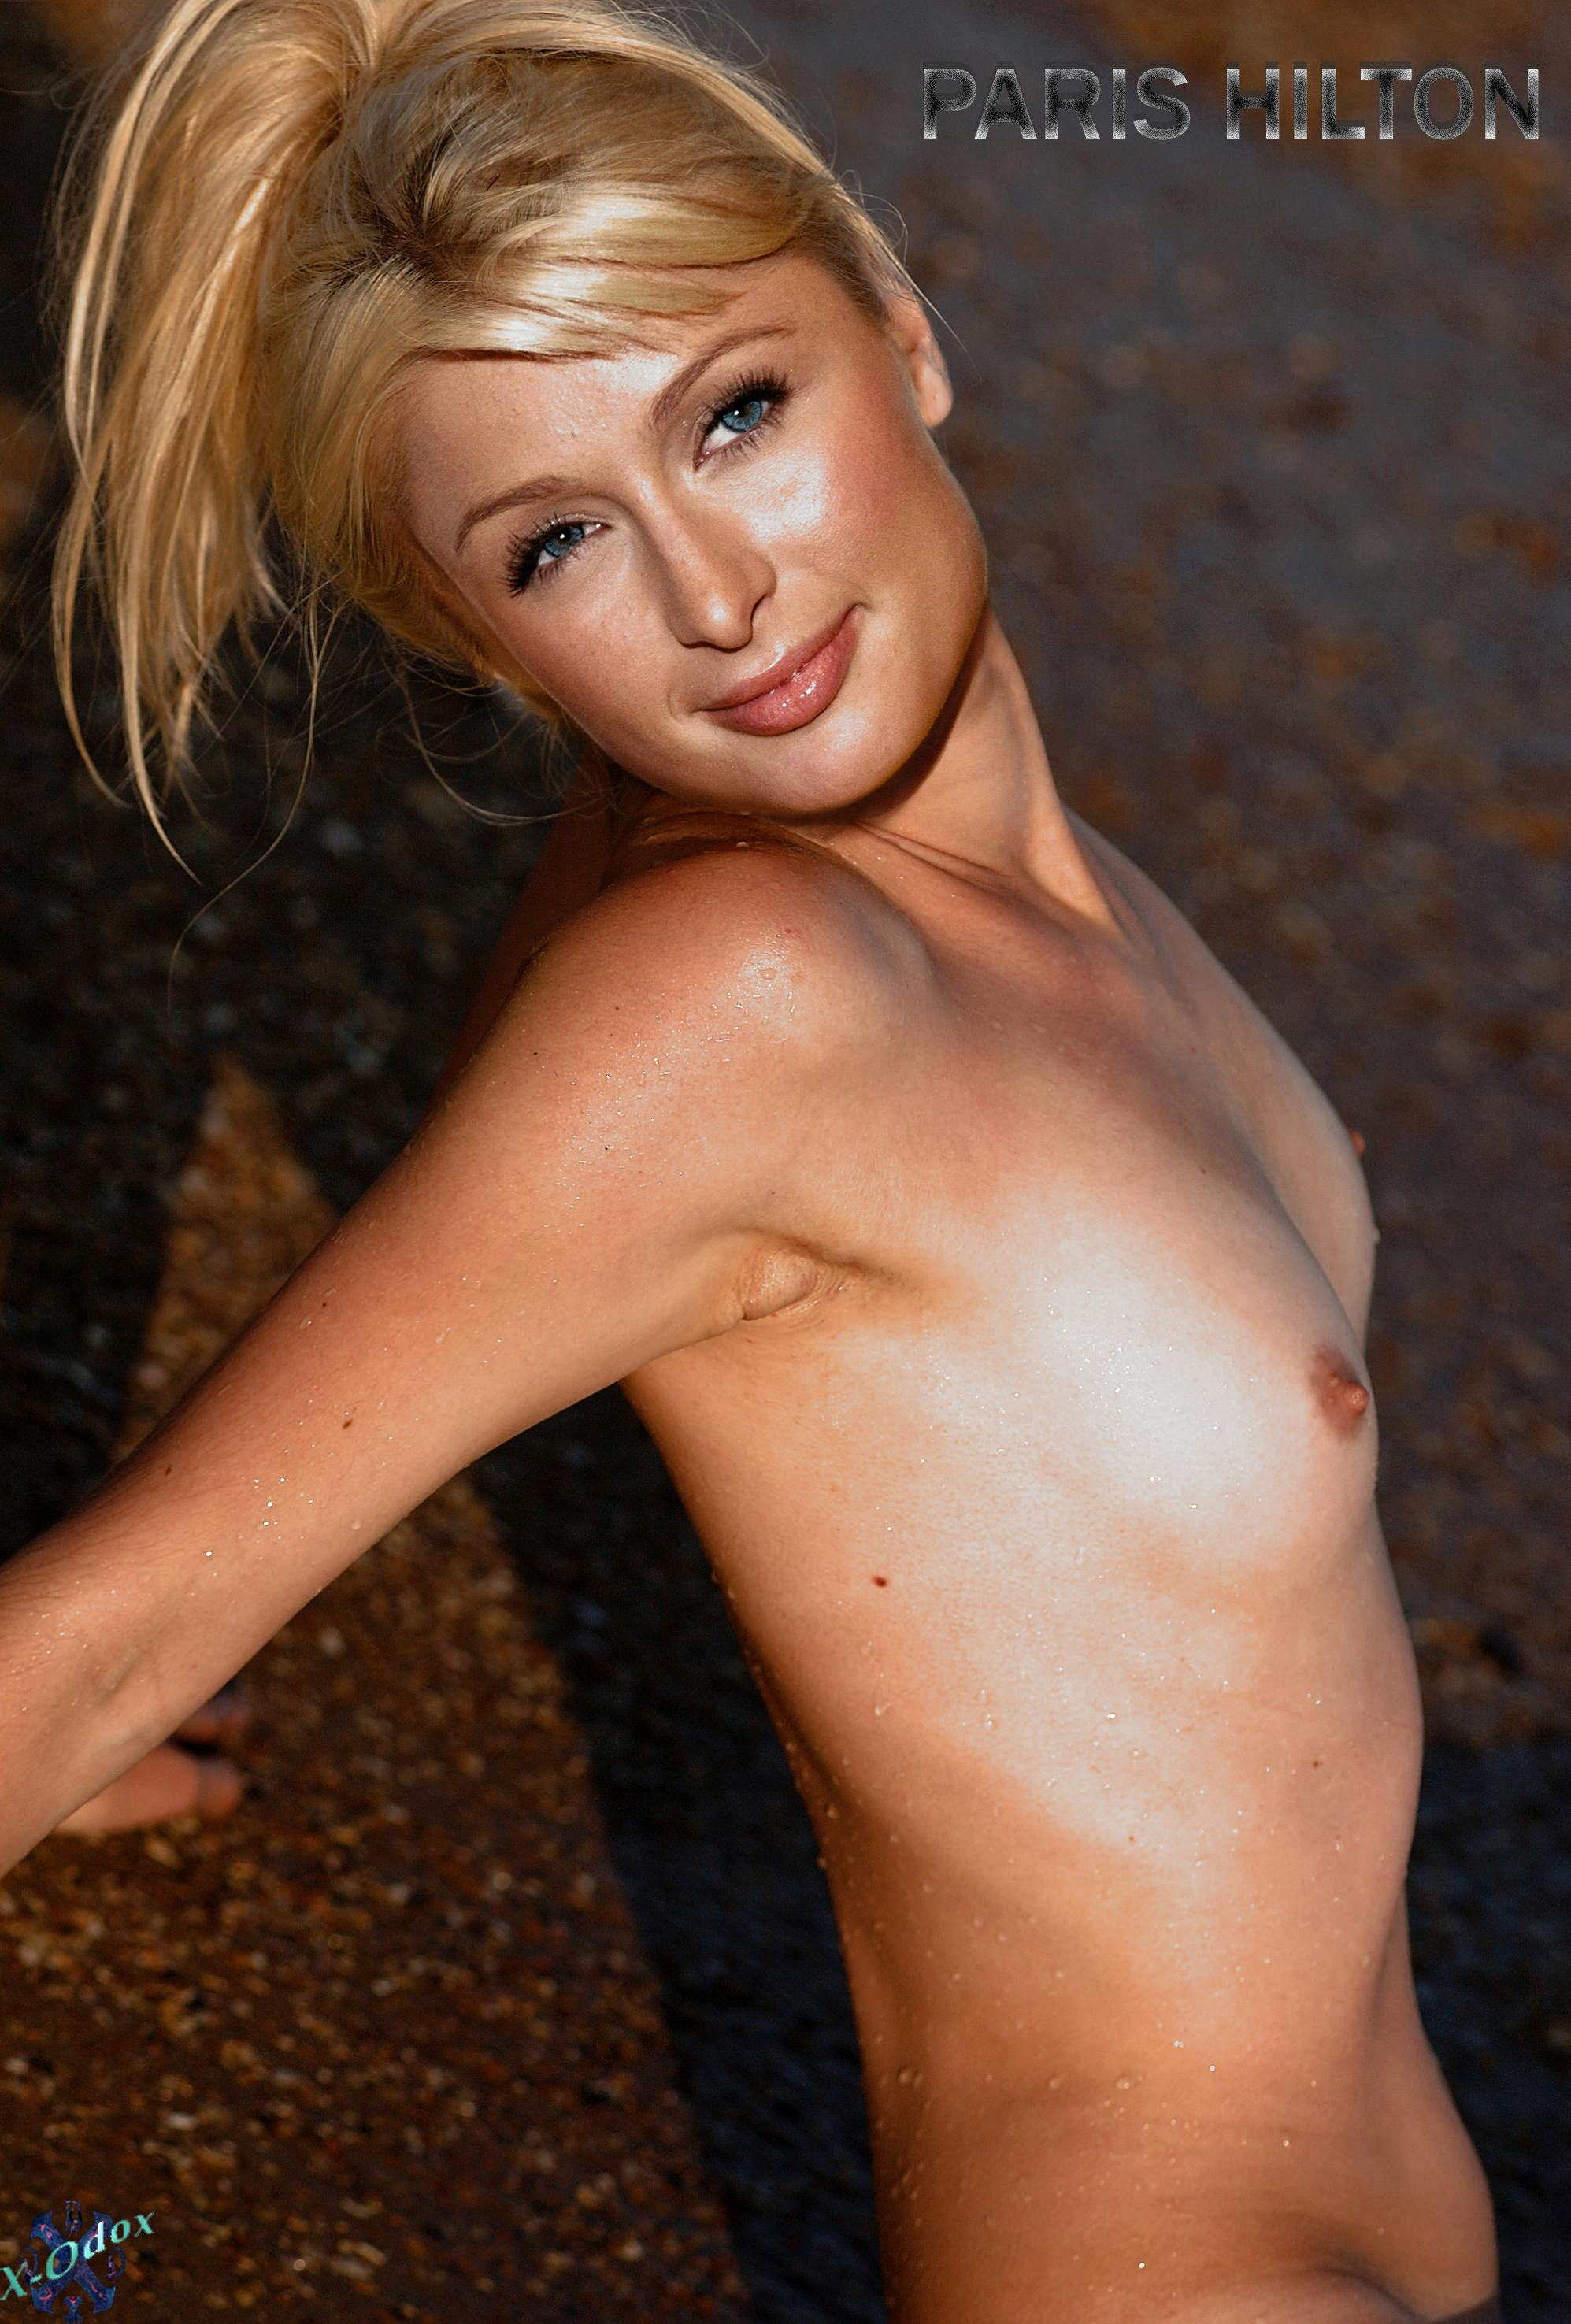 Seeing Paris Hilton Nude Never Gets